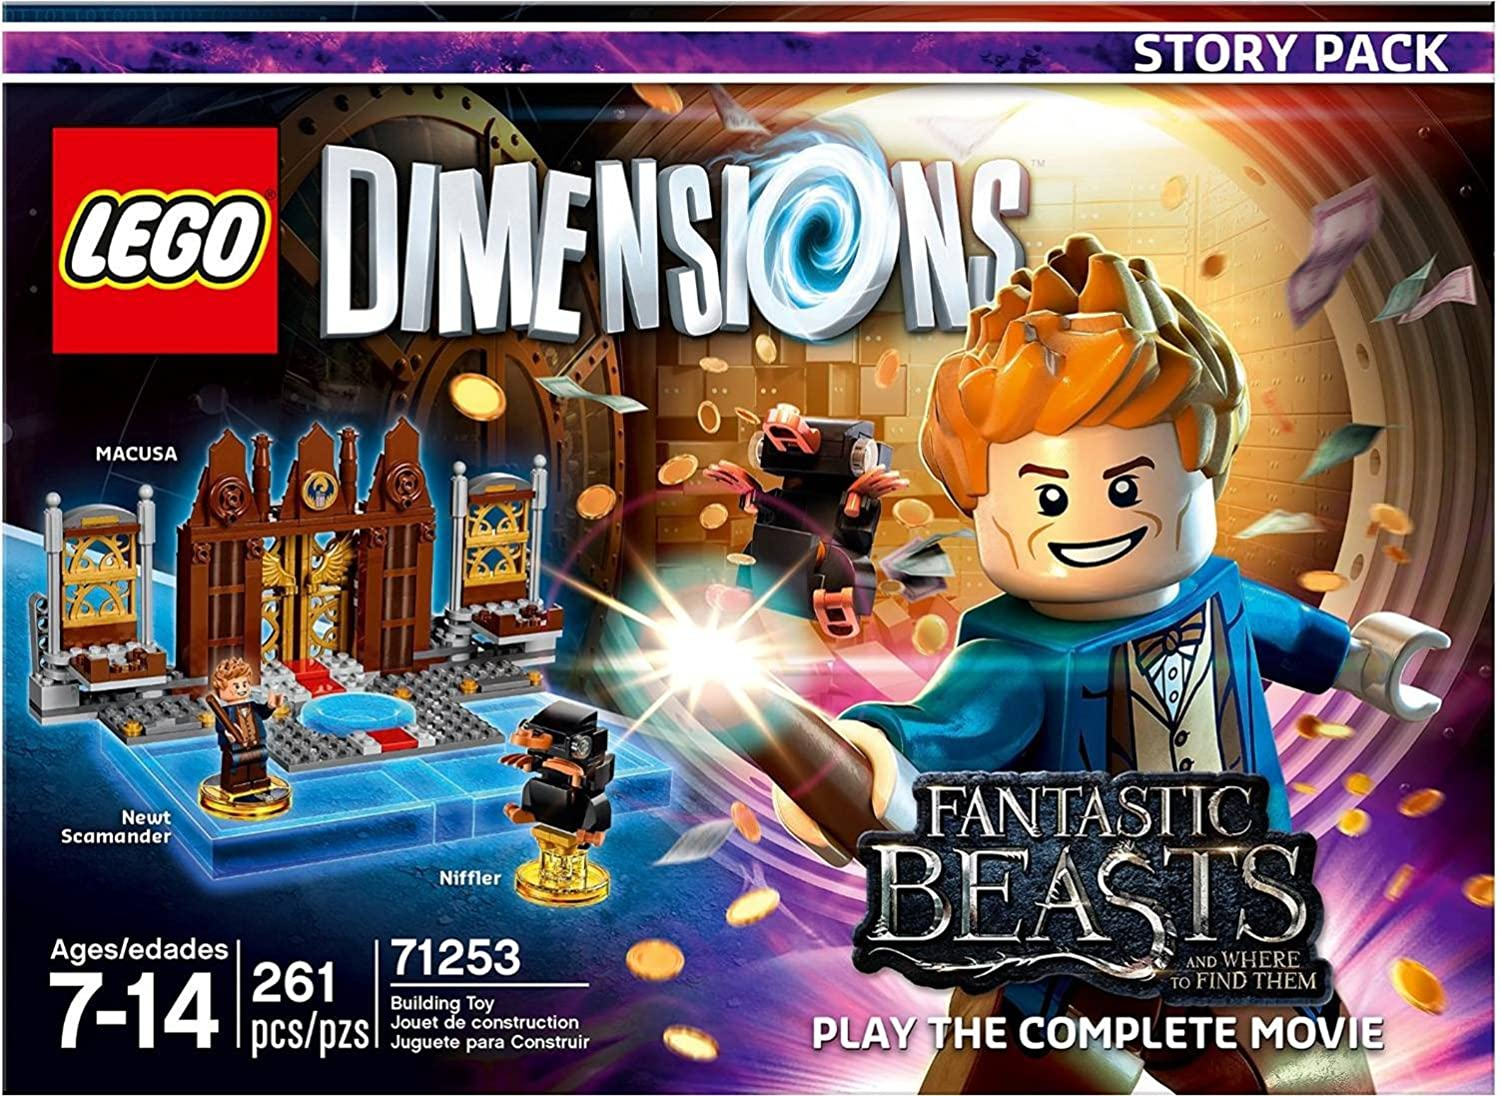 amazon com fantastic beasts story pack lego dimensions not